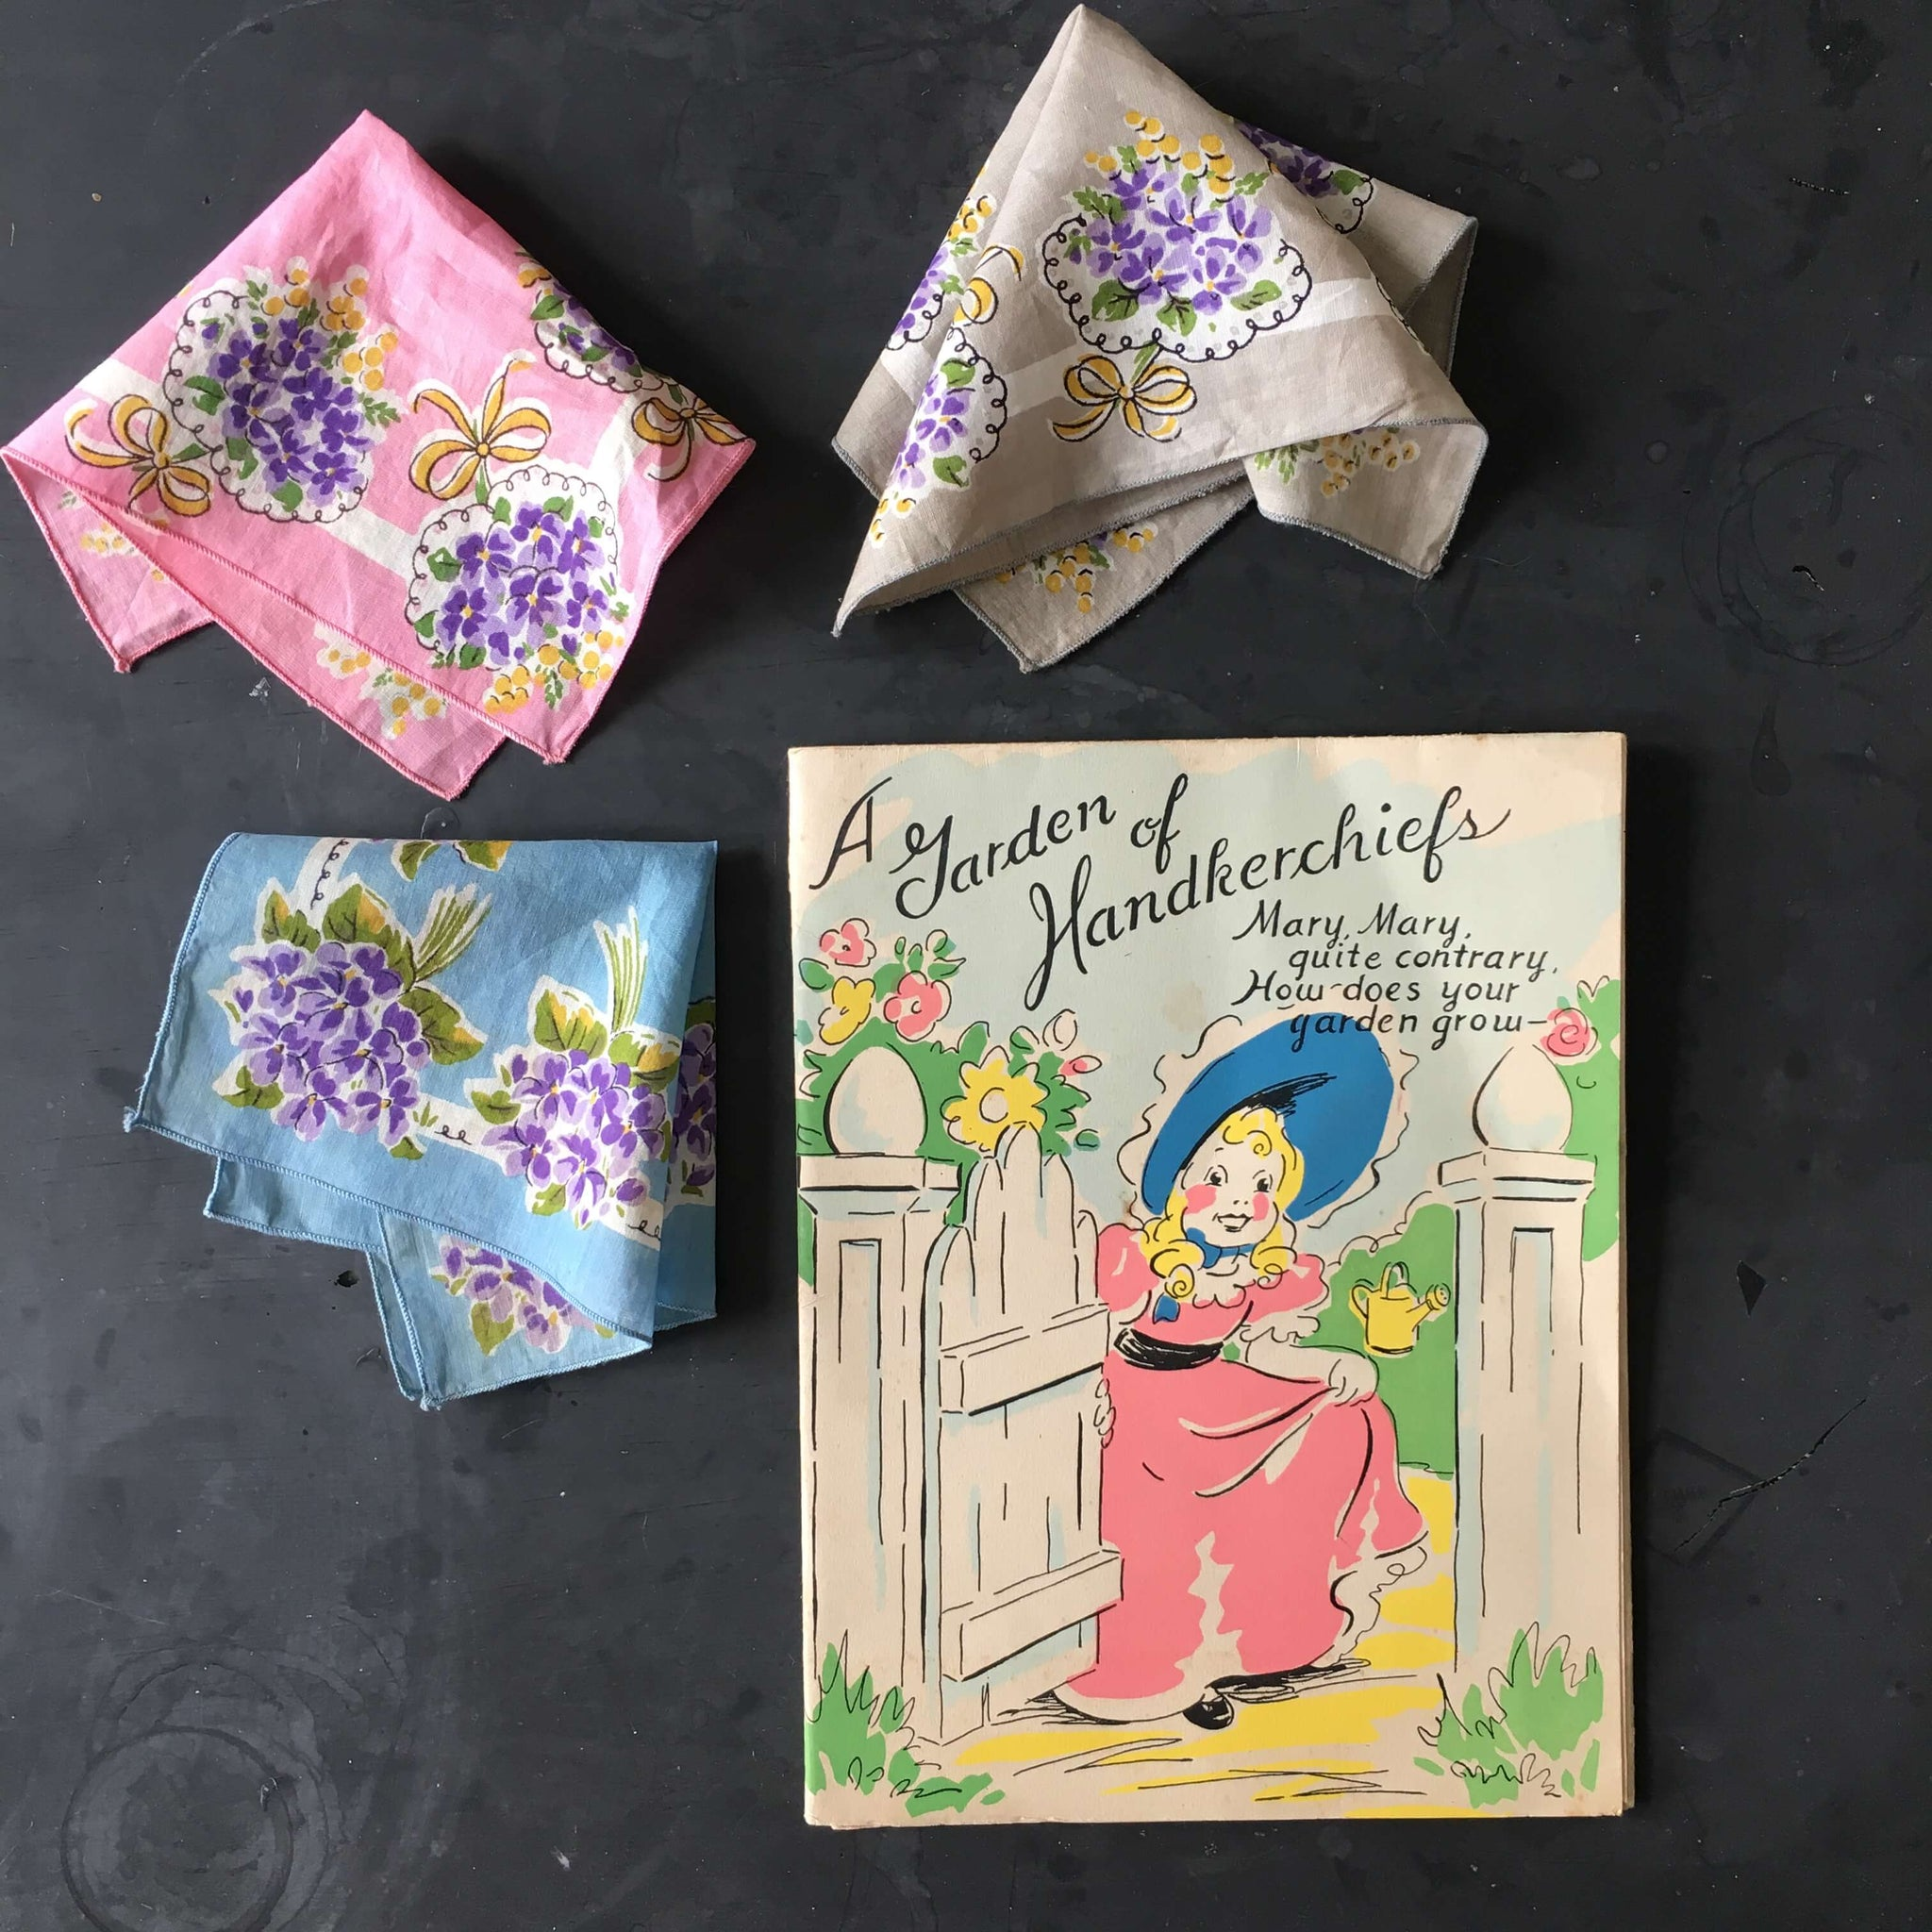 1940's Burmel Gift Card and Handkerchief Collection - Three Floral Handkerchiefs - Rare Vintage Hankie Set